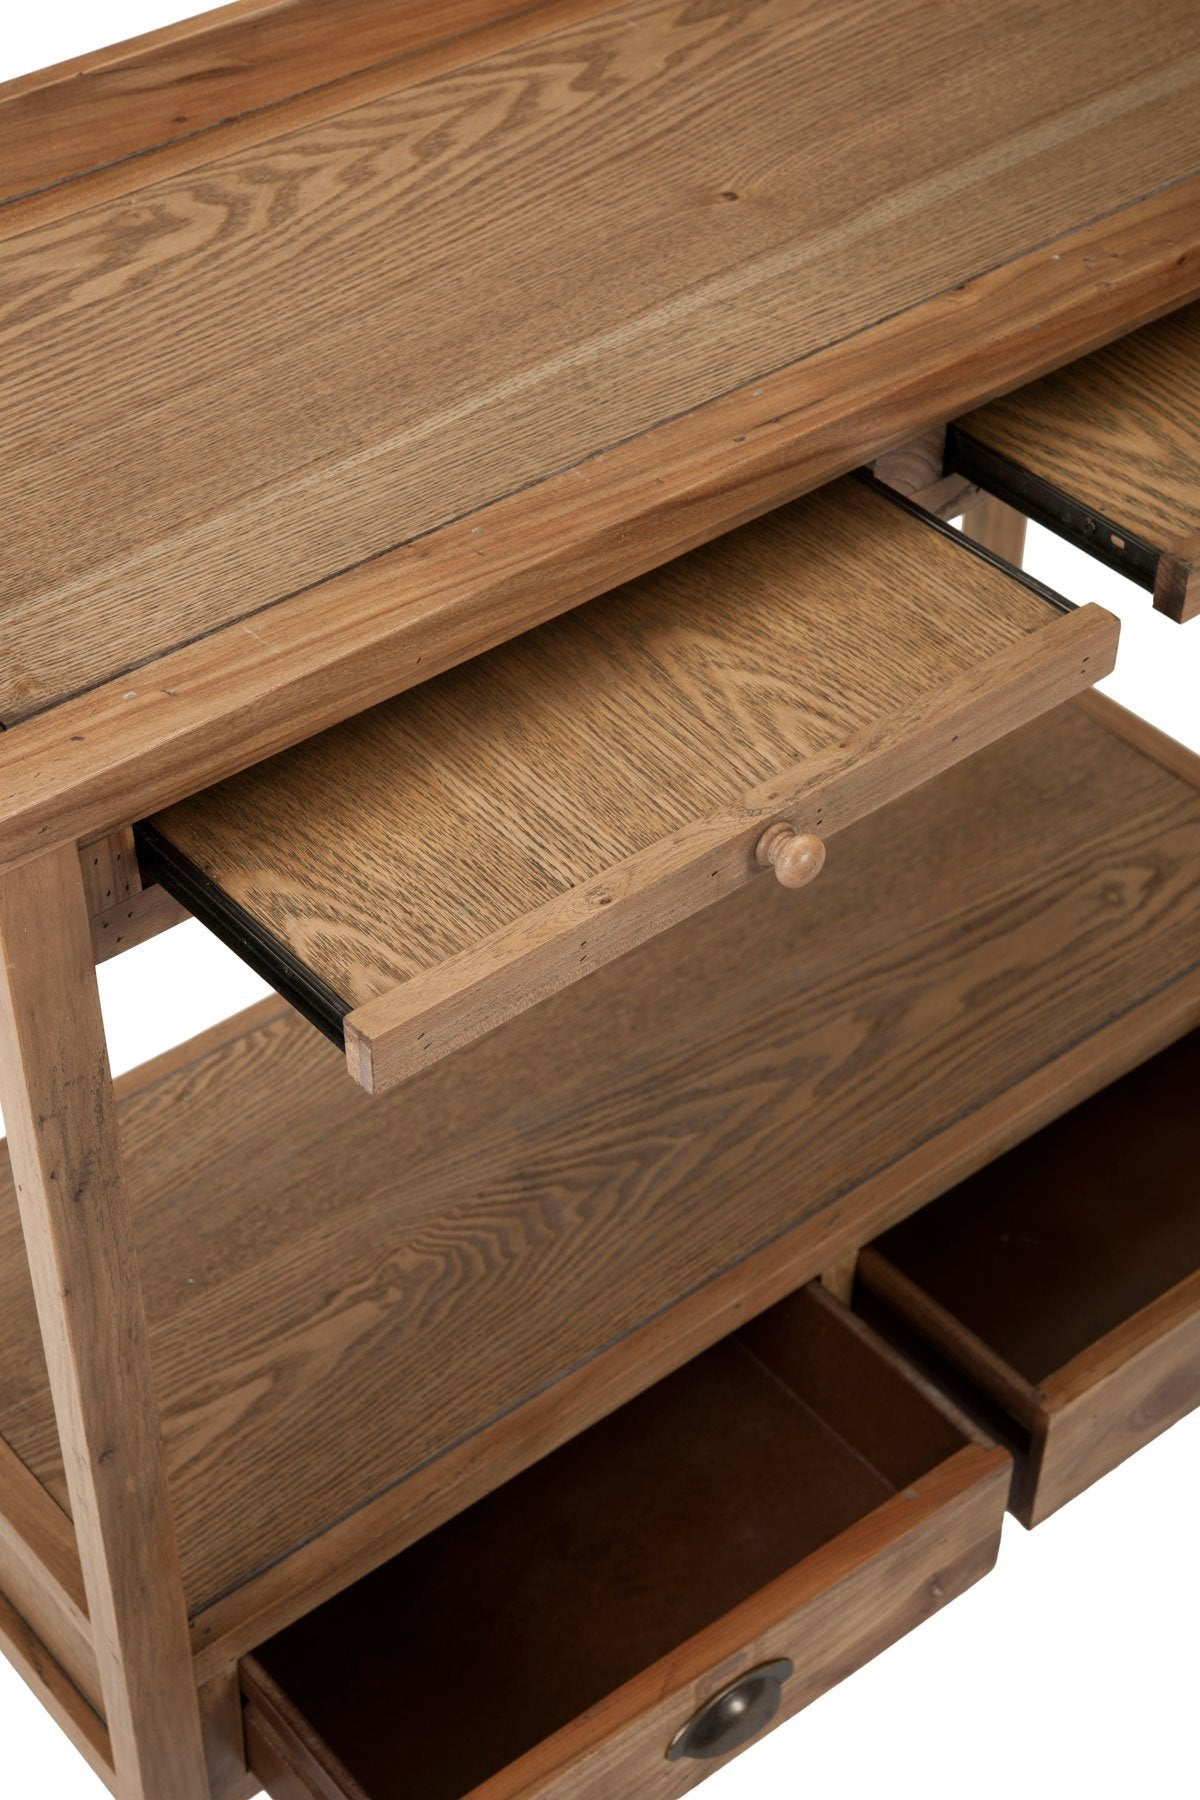 Peter Console With Storage Drawers.